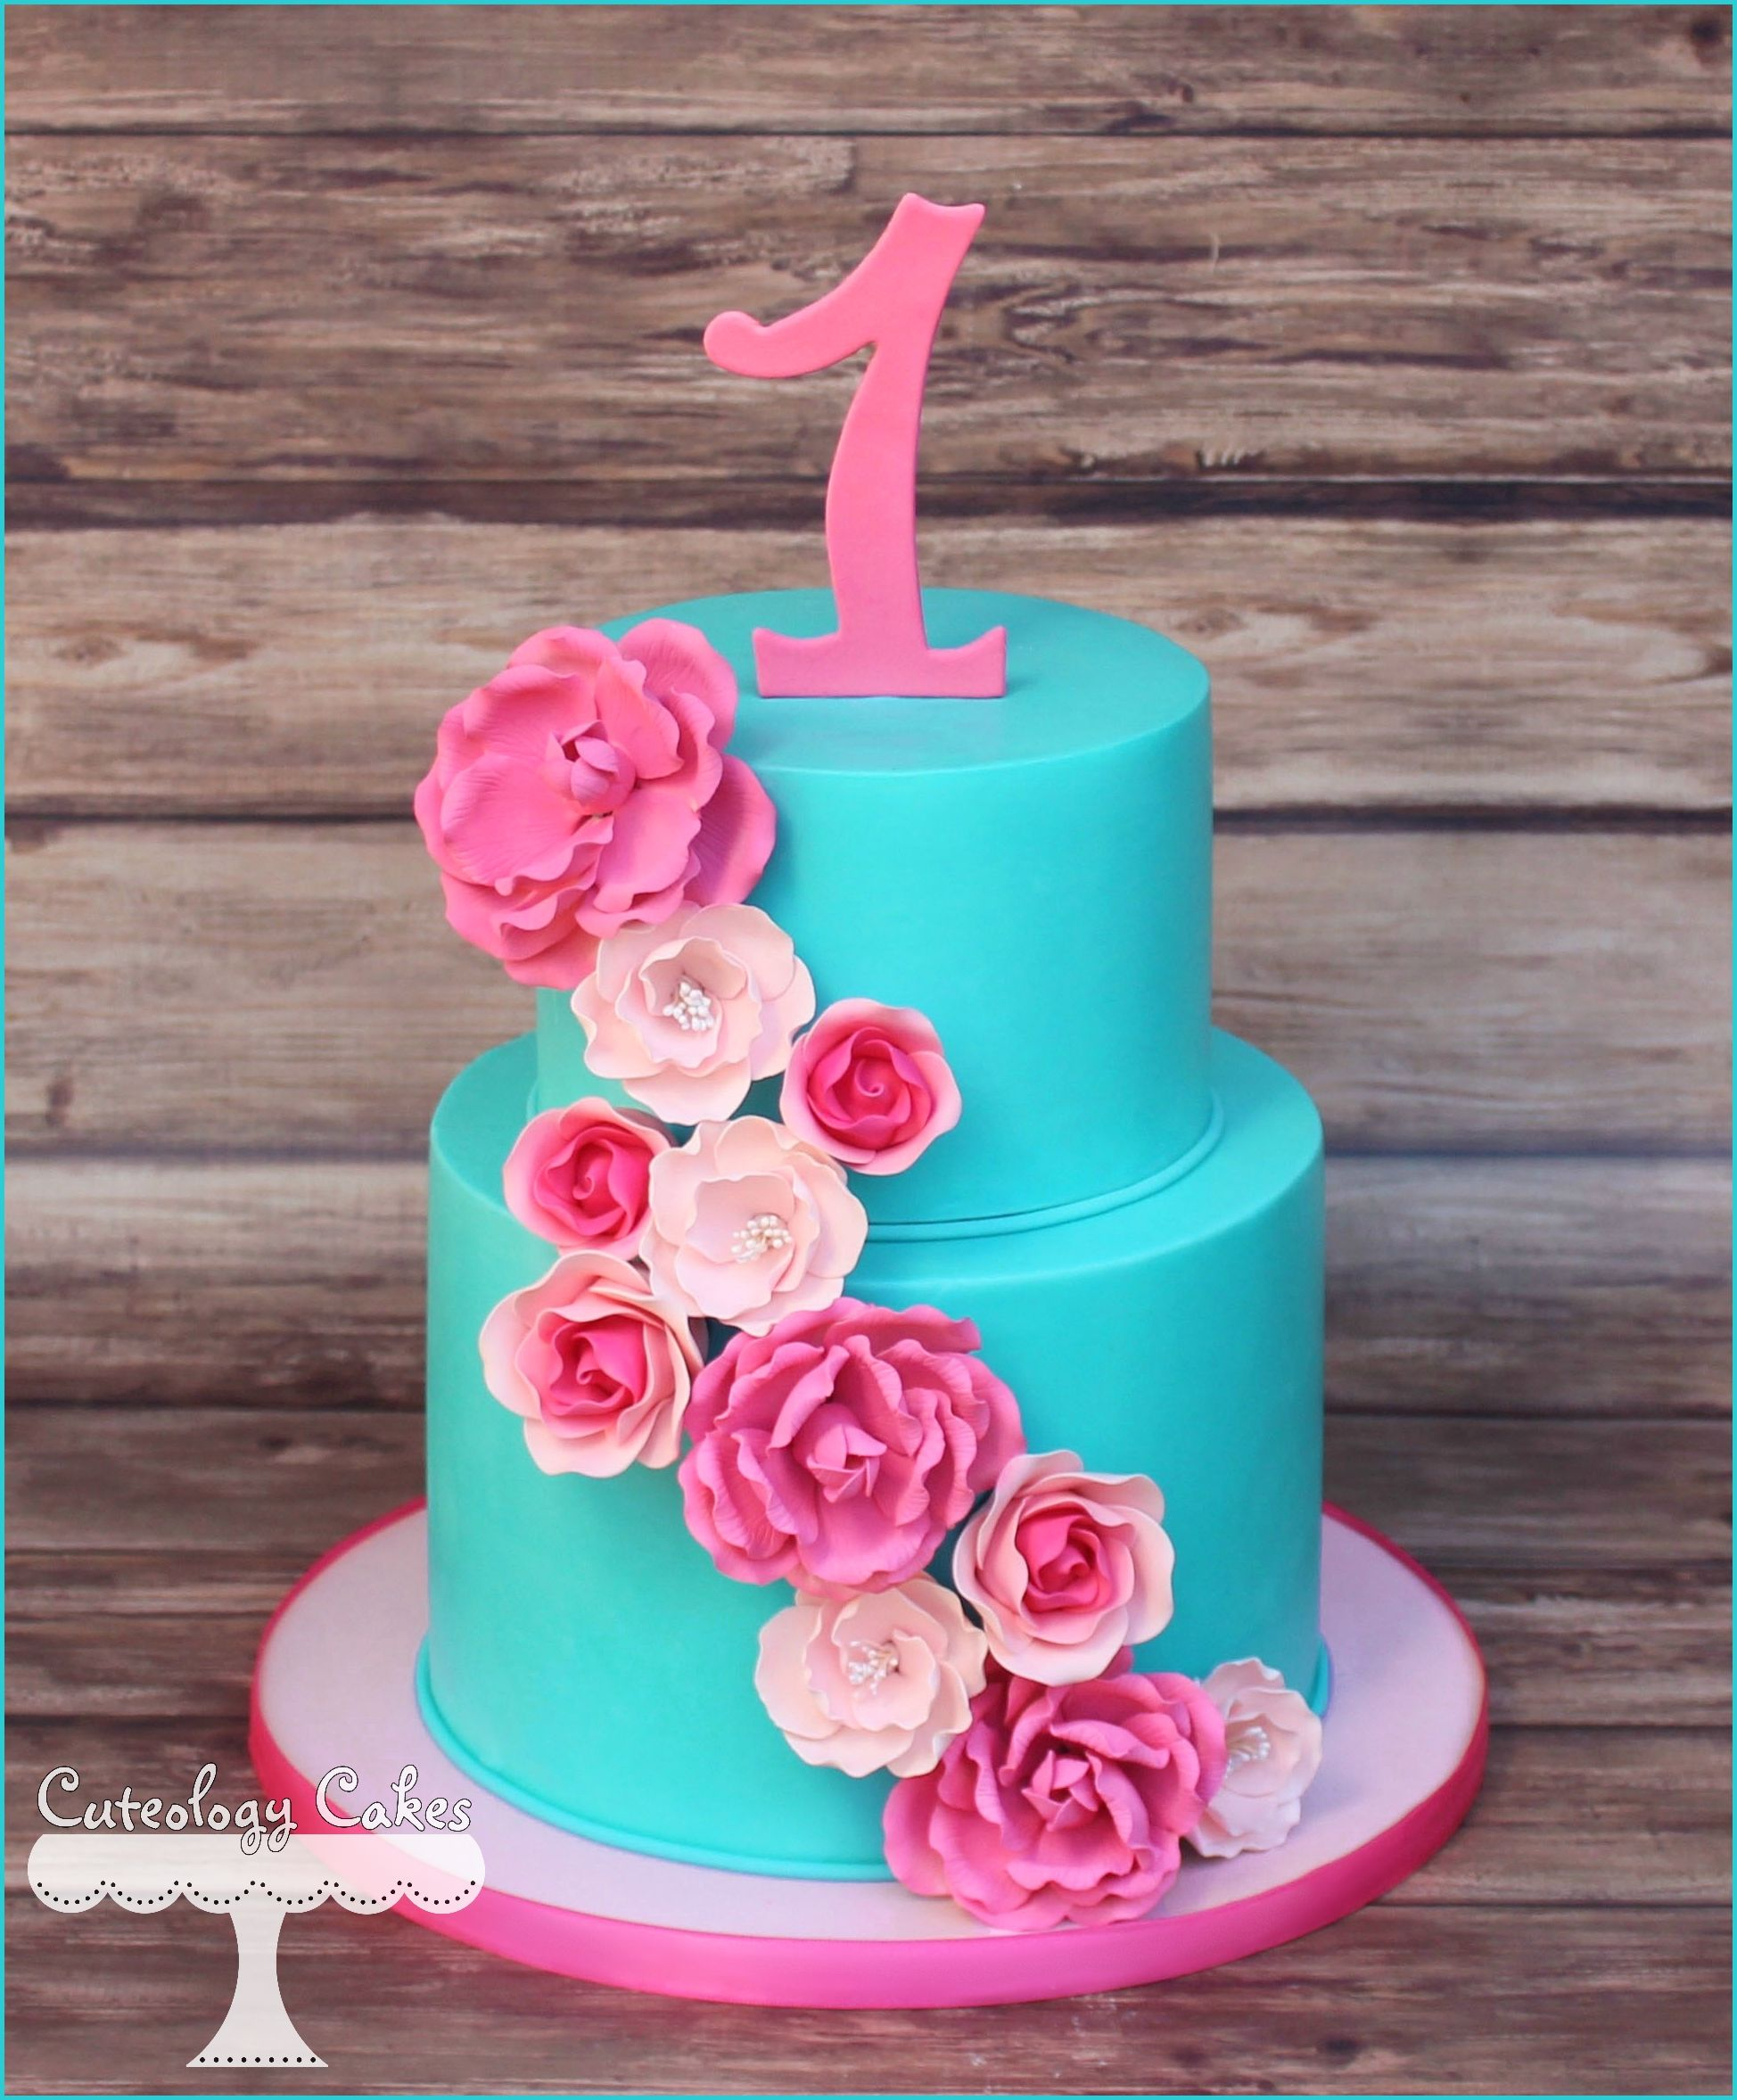 Teal and Pink 1st Birthday cake with flowers wwwfacebookcomi